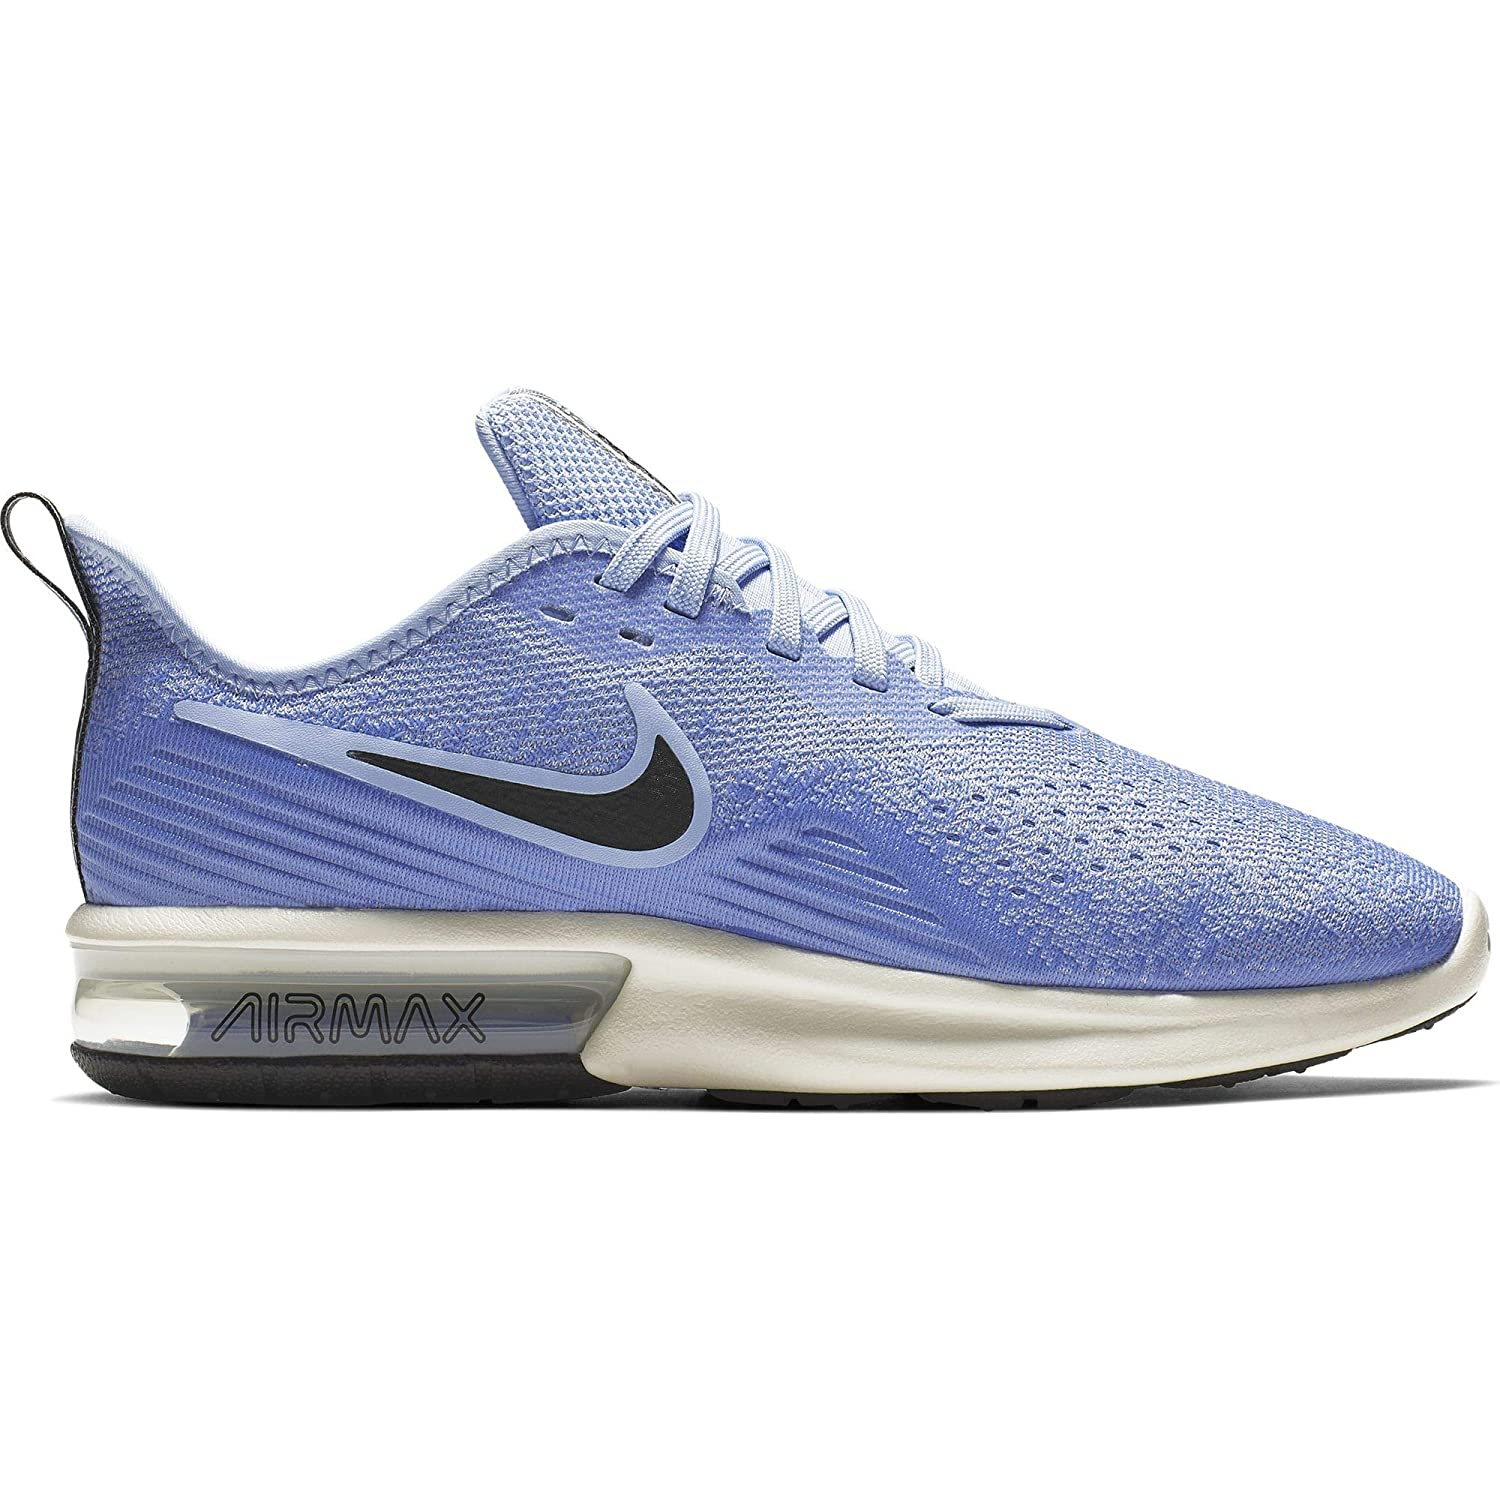 Buy Nike Women's WMNS AIR MAX Sequent 4 AluminumBlack Royal